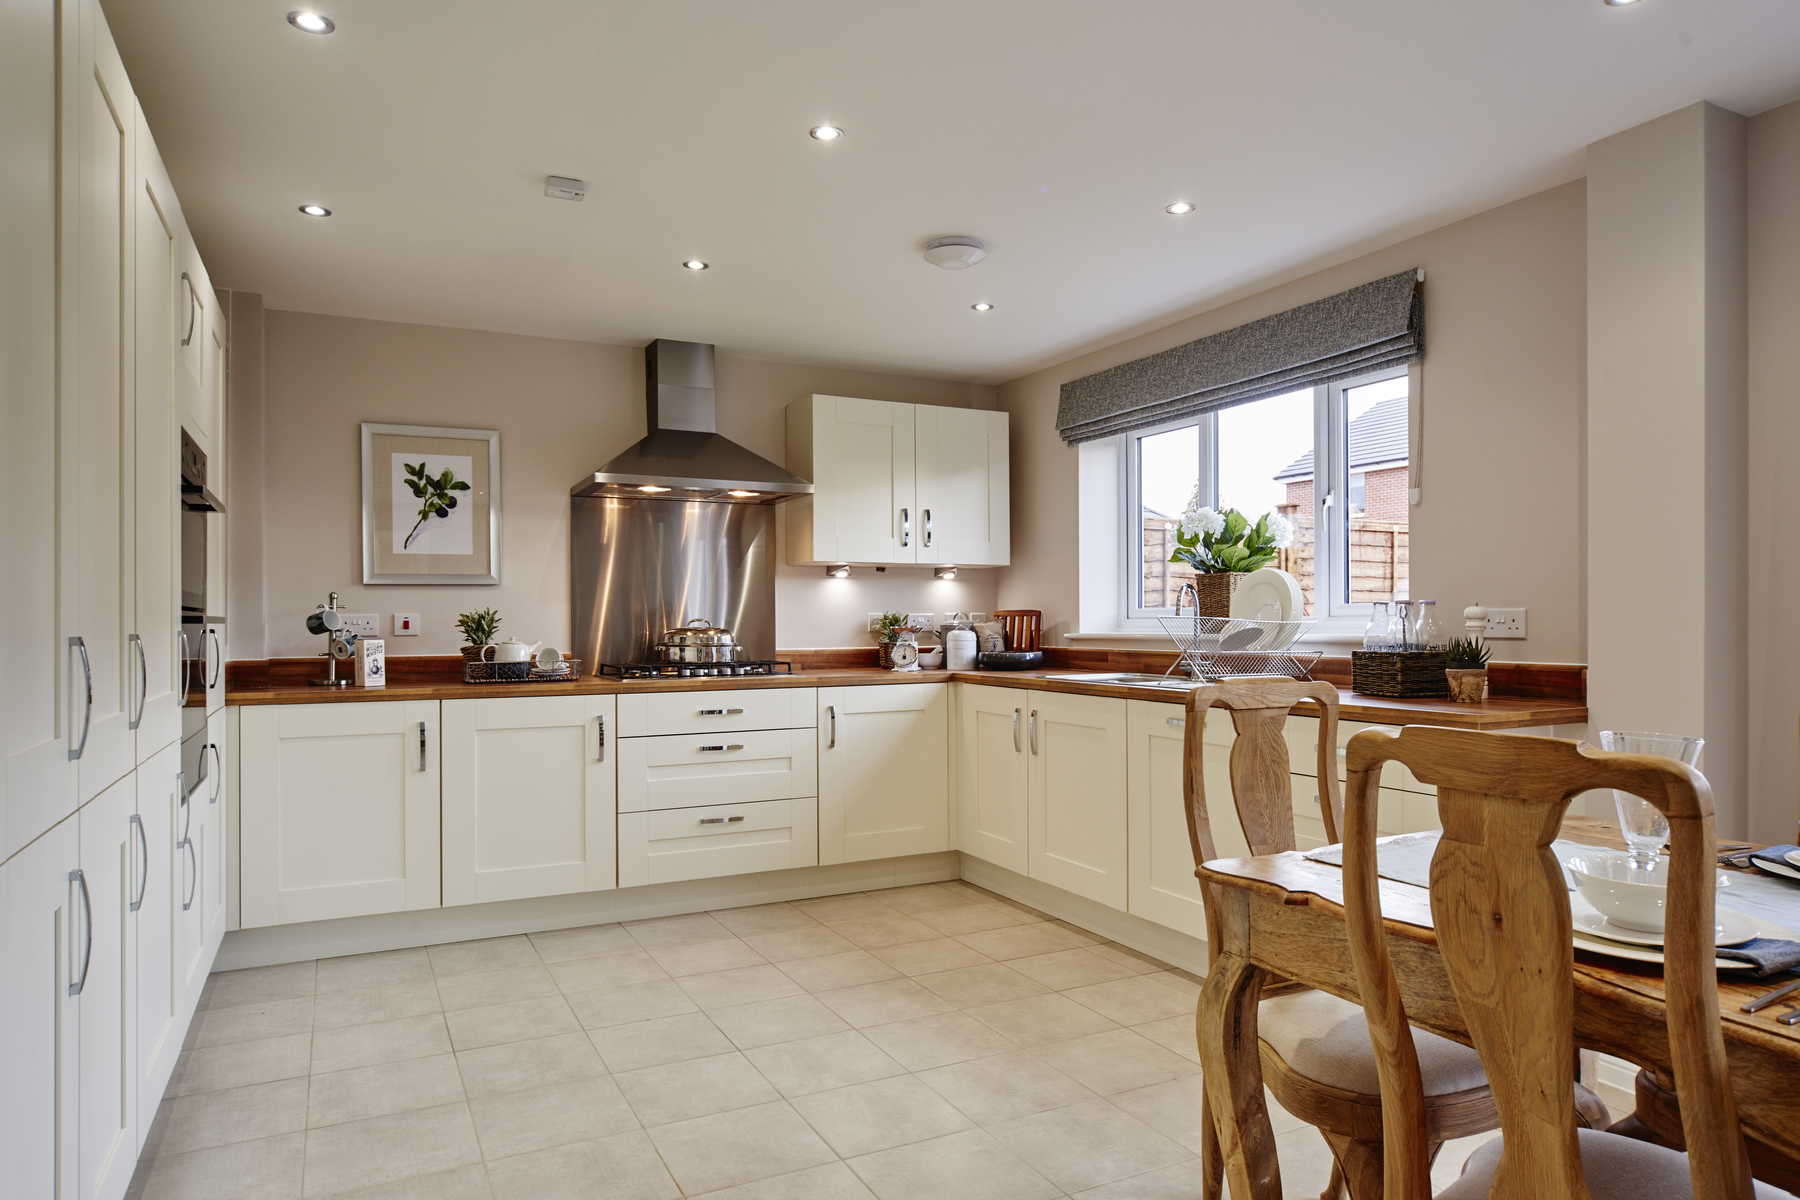 TWM_BurlingtonFields_Shifnal_Haddenham_Showhome_0002